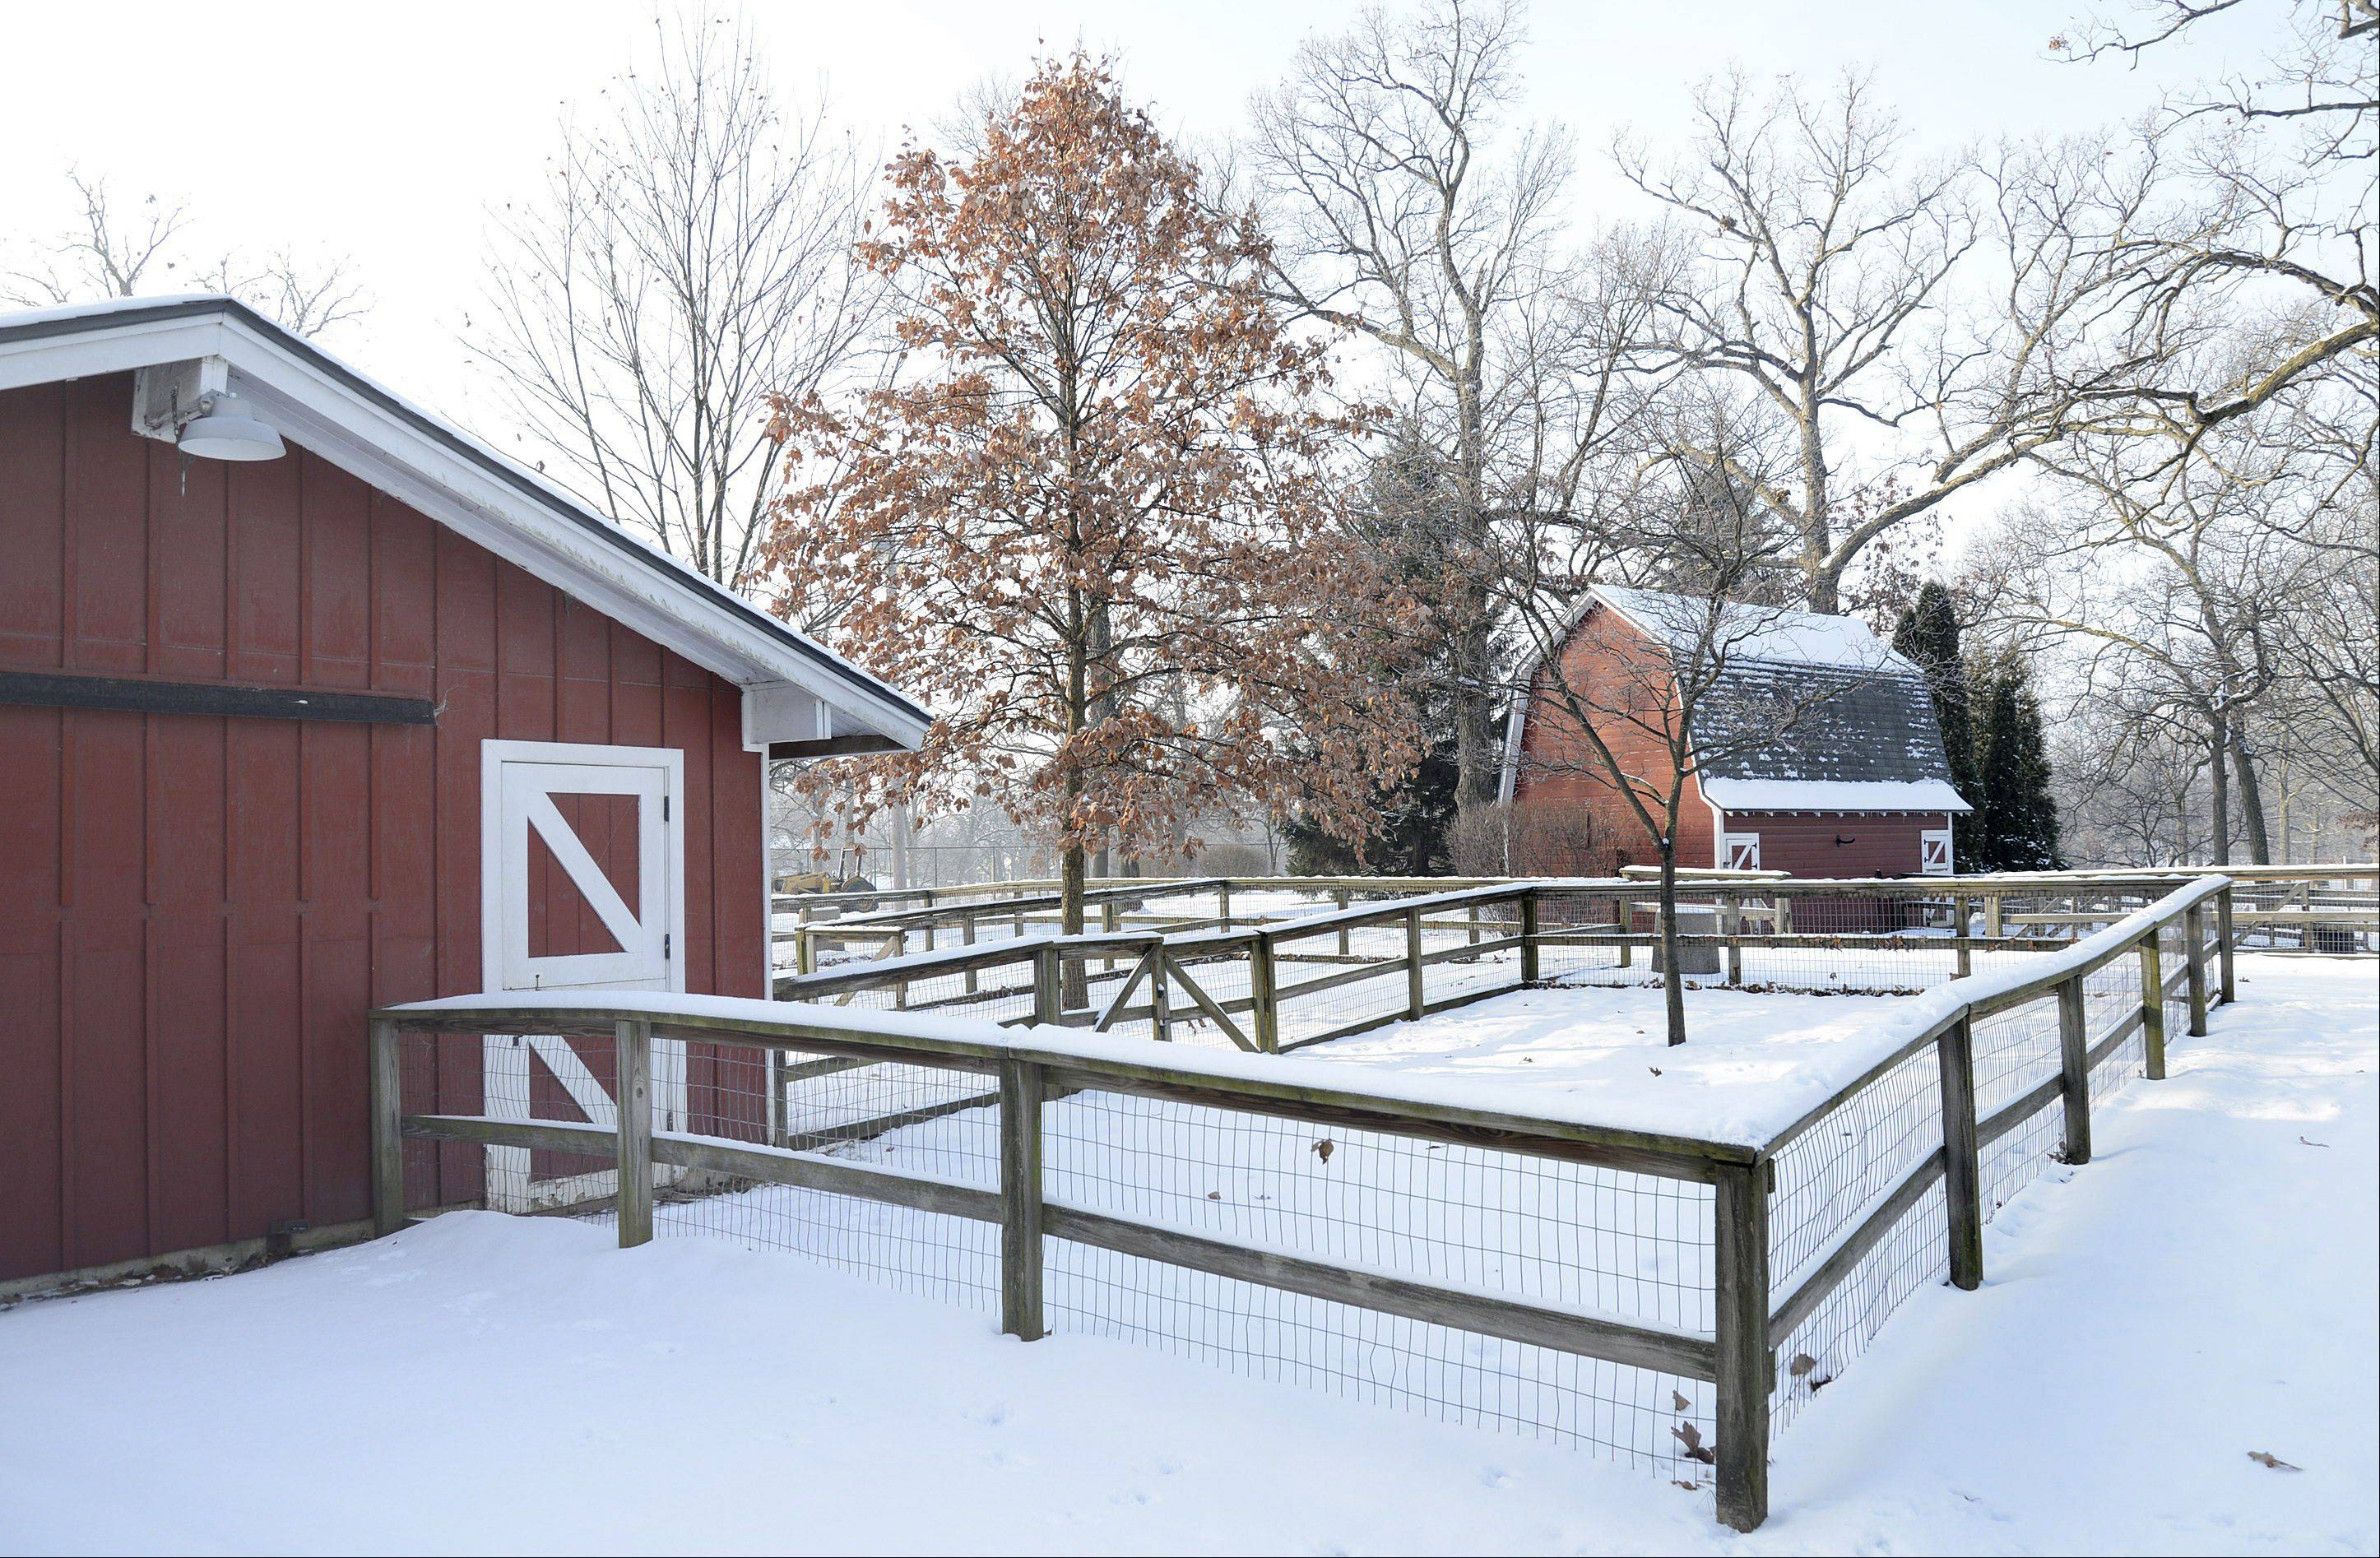 The barn on the left previously housed pigs, goats, calves and llamas. The barn on the right kept sheep and a donkey.